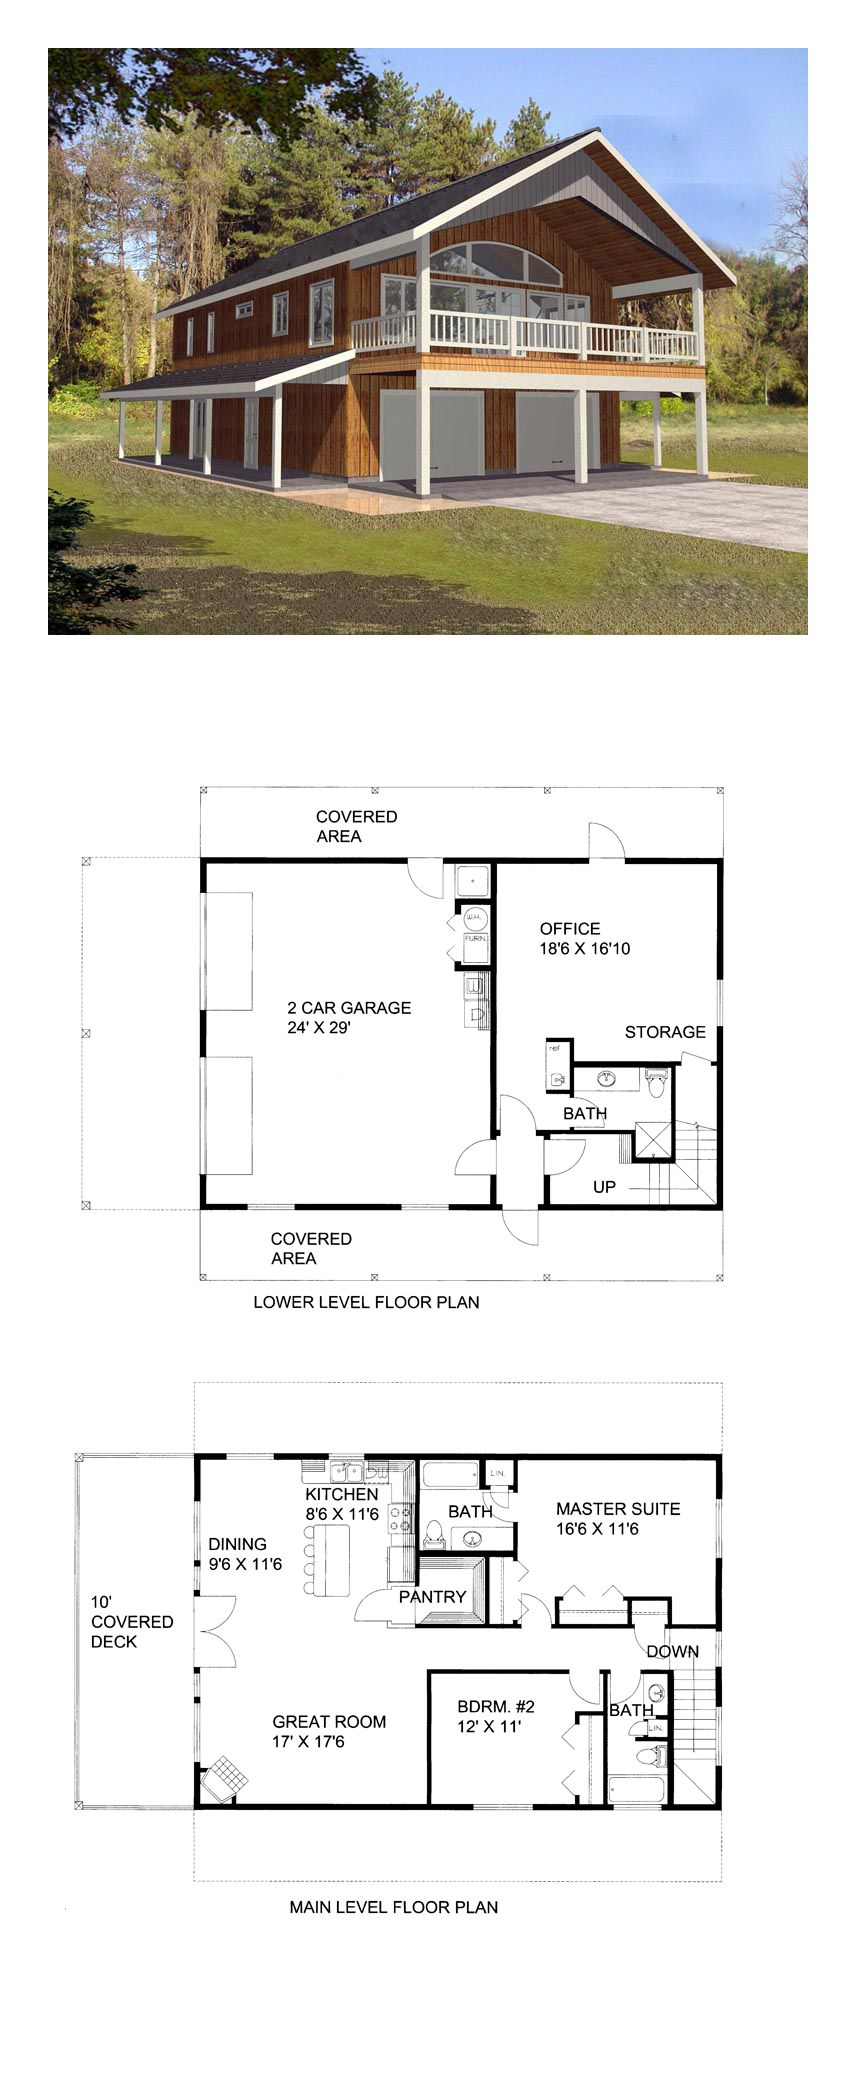 Garage apartment plan 85372 total living area 1901 sq for Garage apartment floor plans